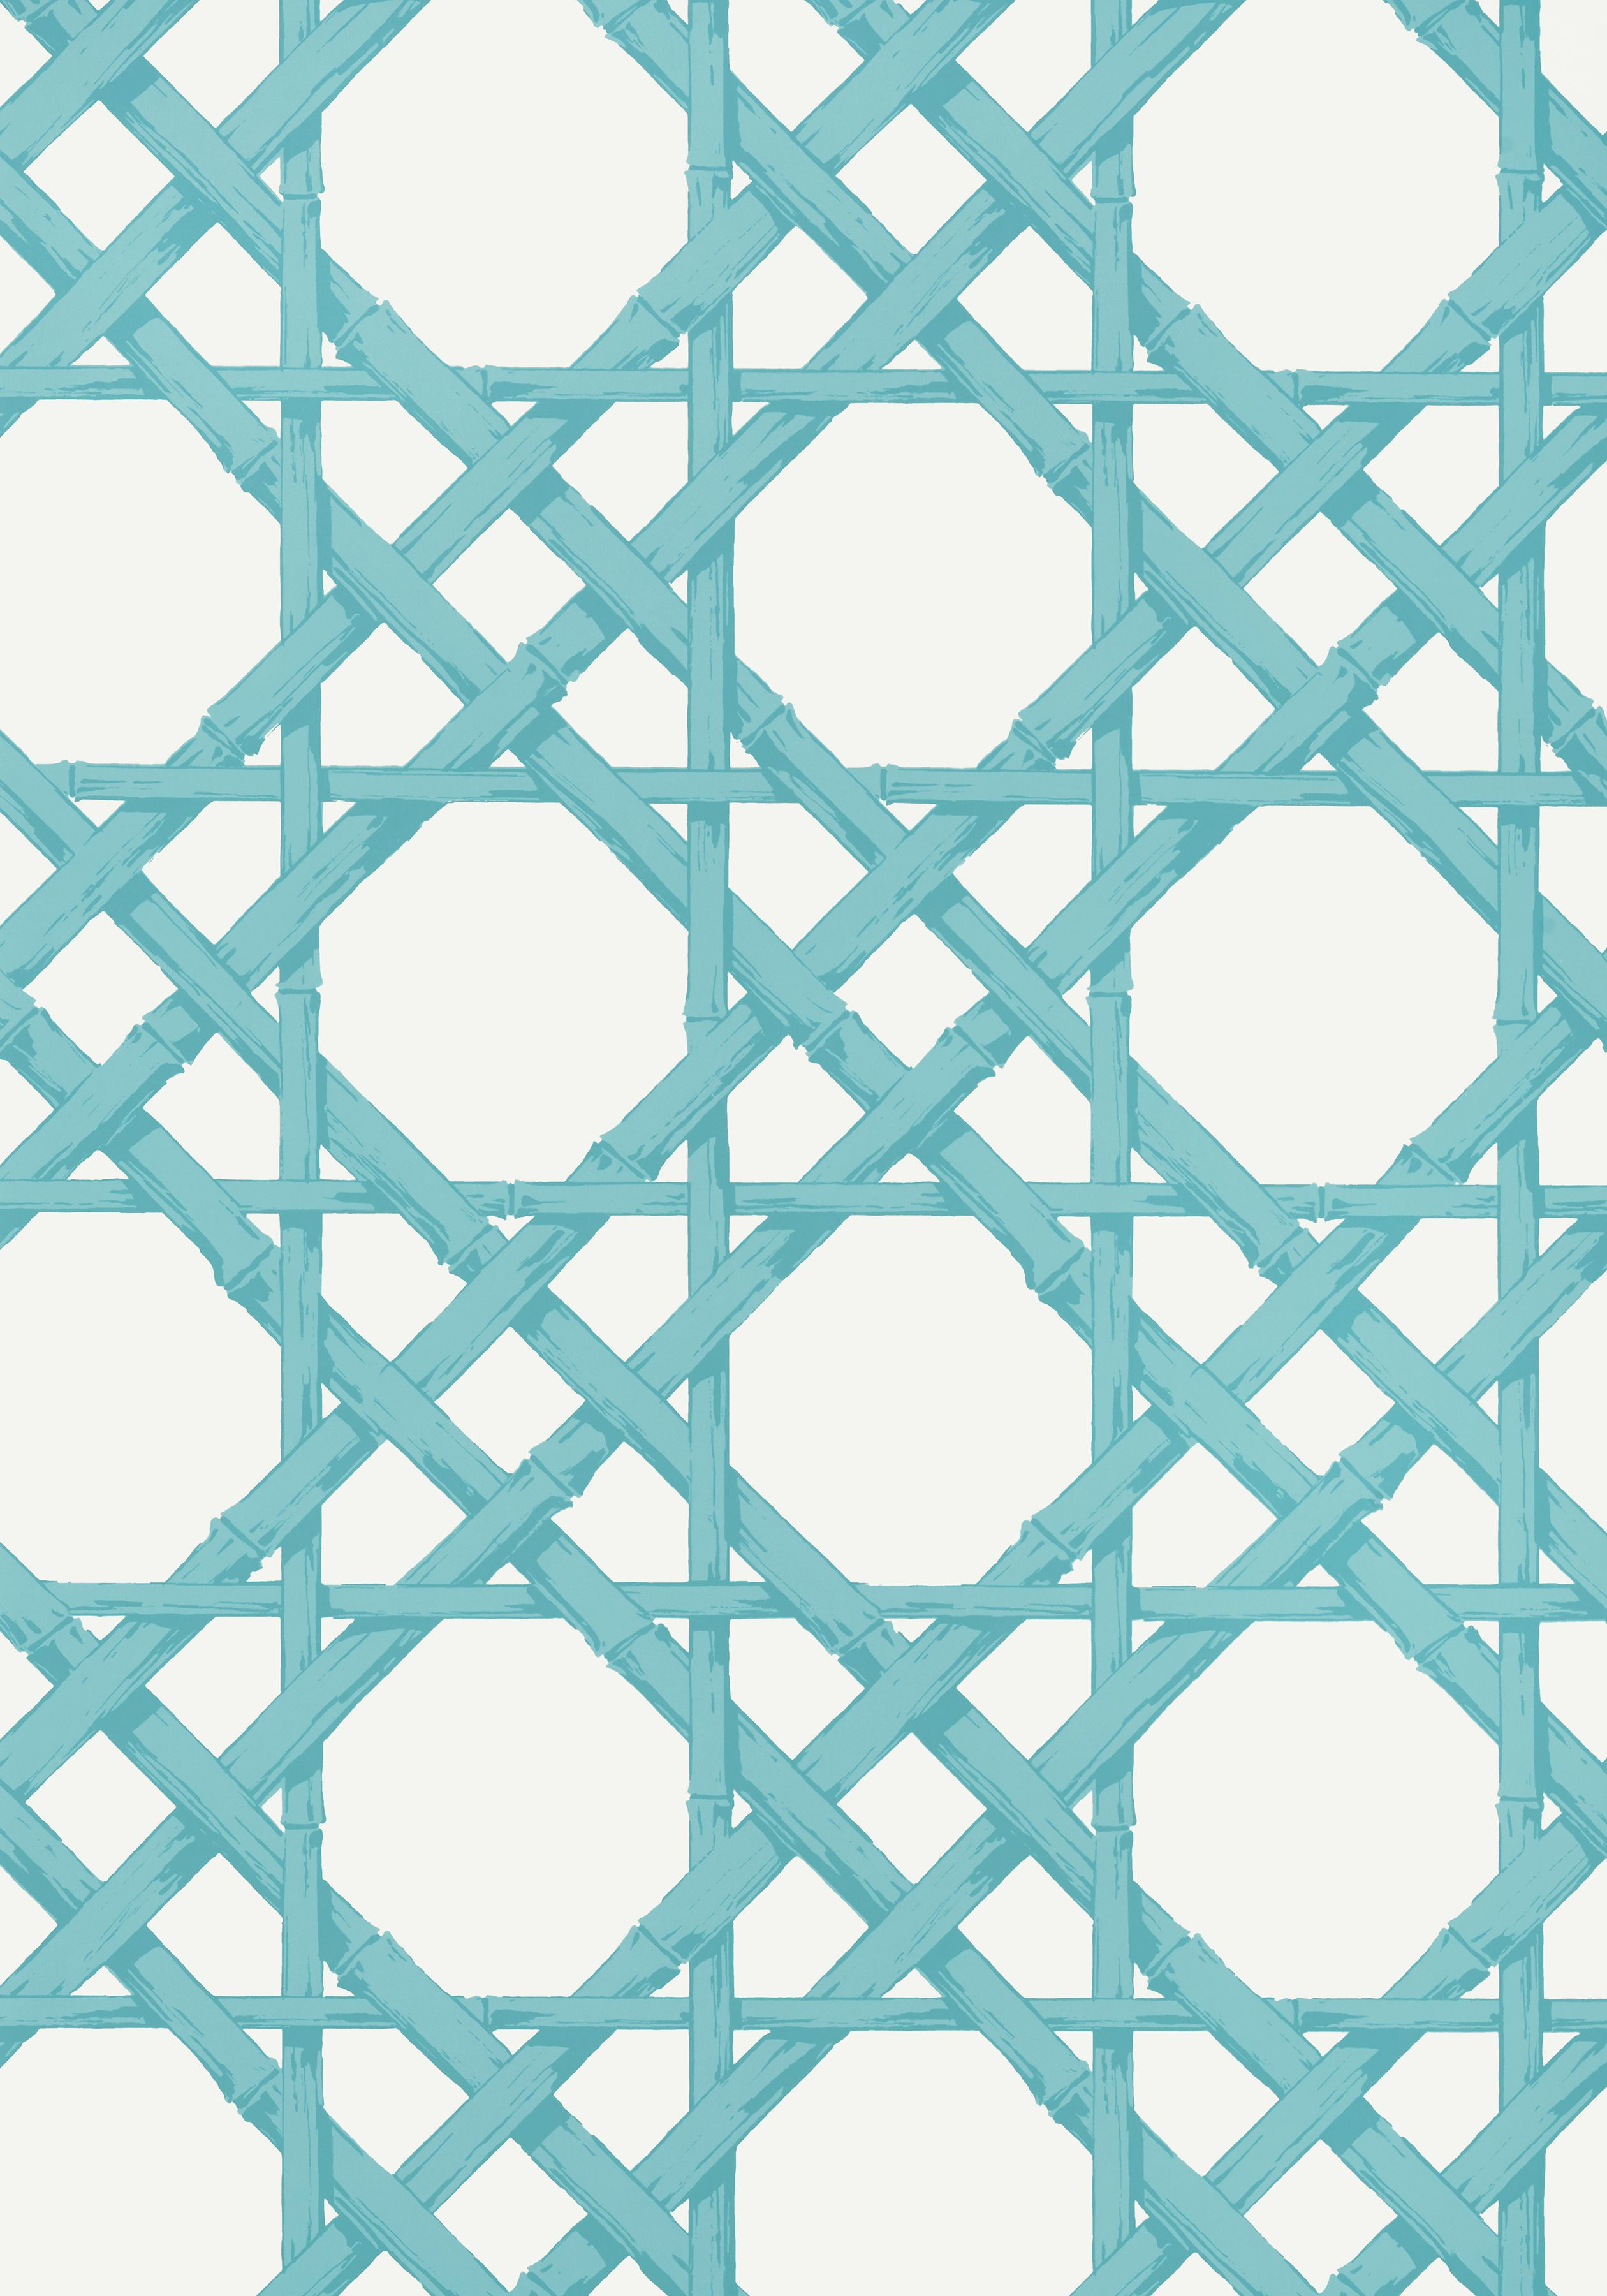 CYRUS CANE Turquoise T Collection Summer House from